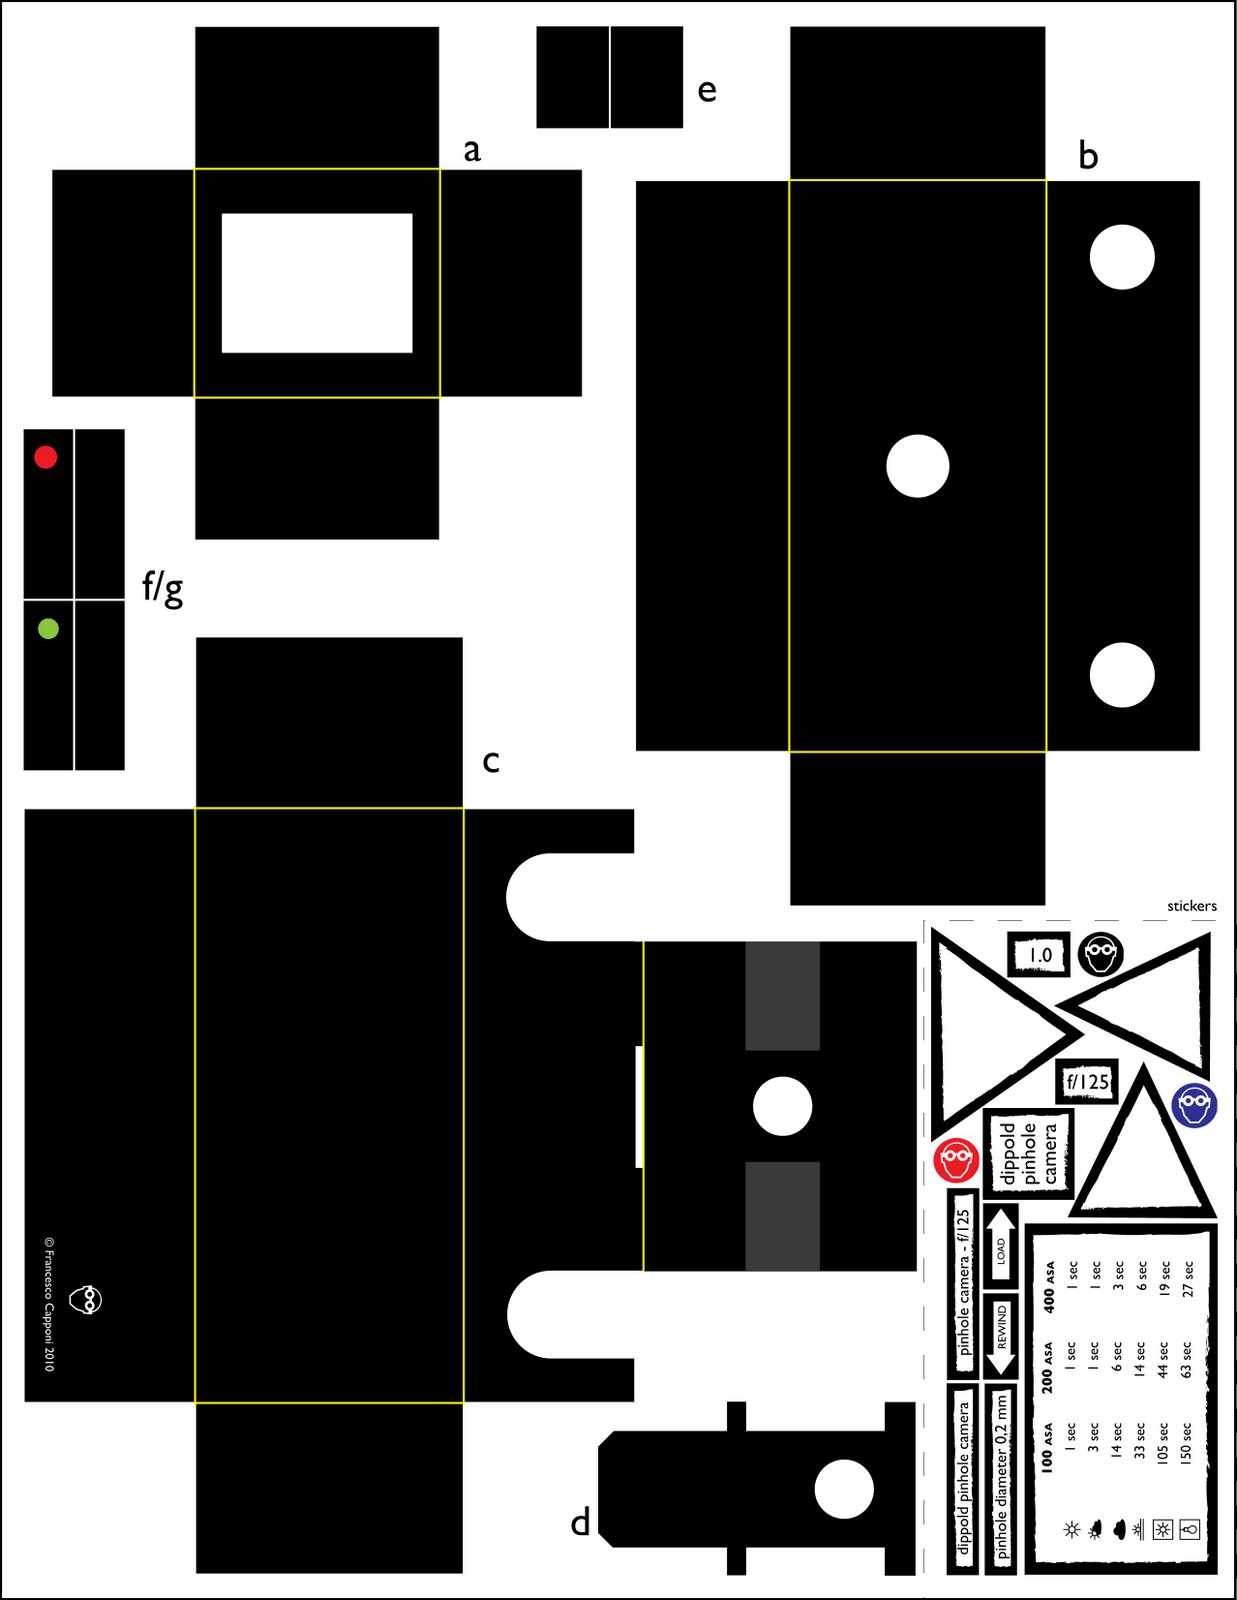 The Lab Template For A 35mm Pinhole Camera